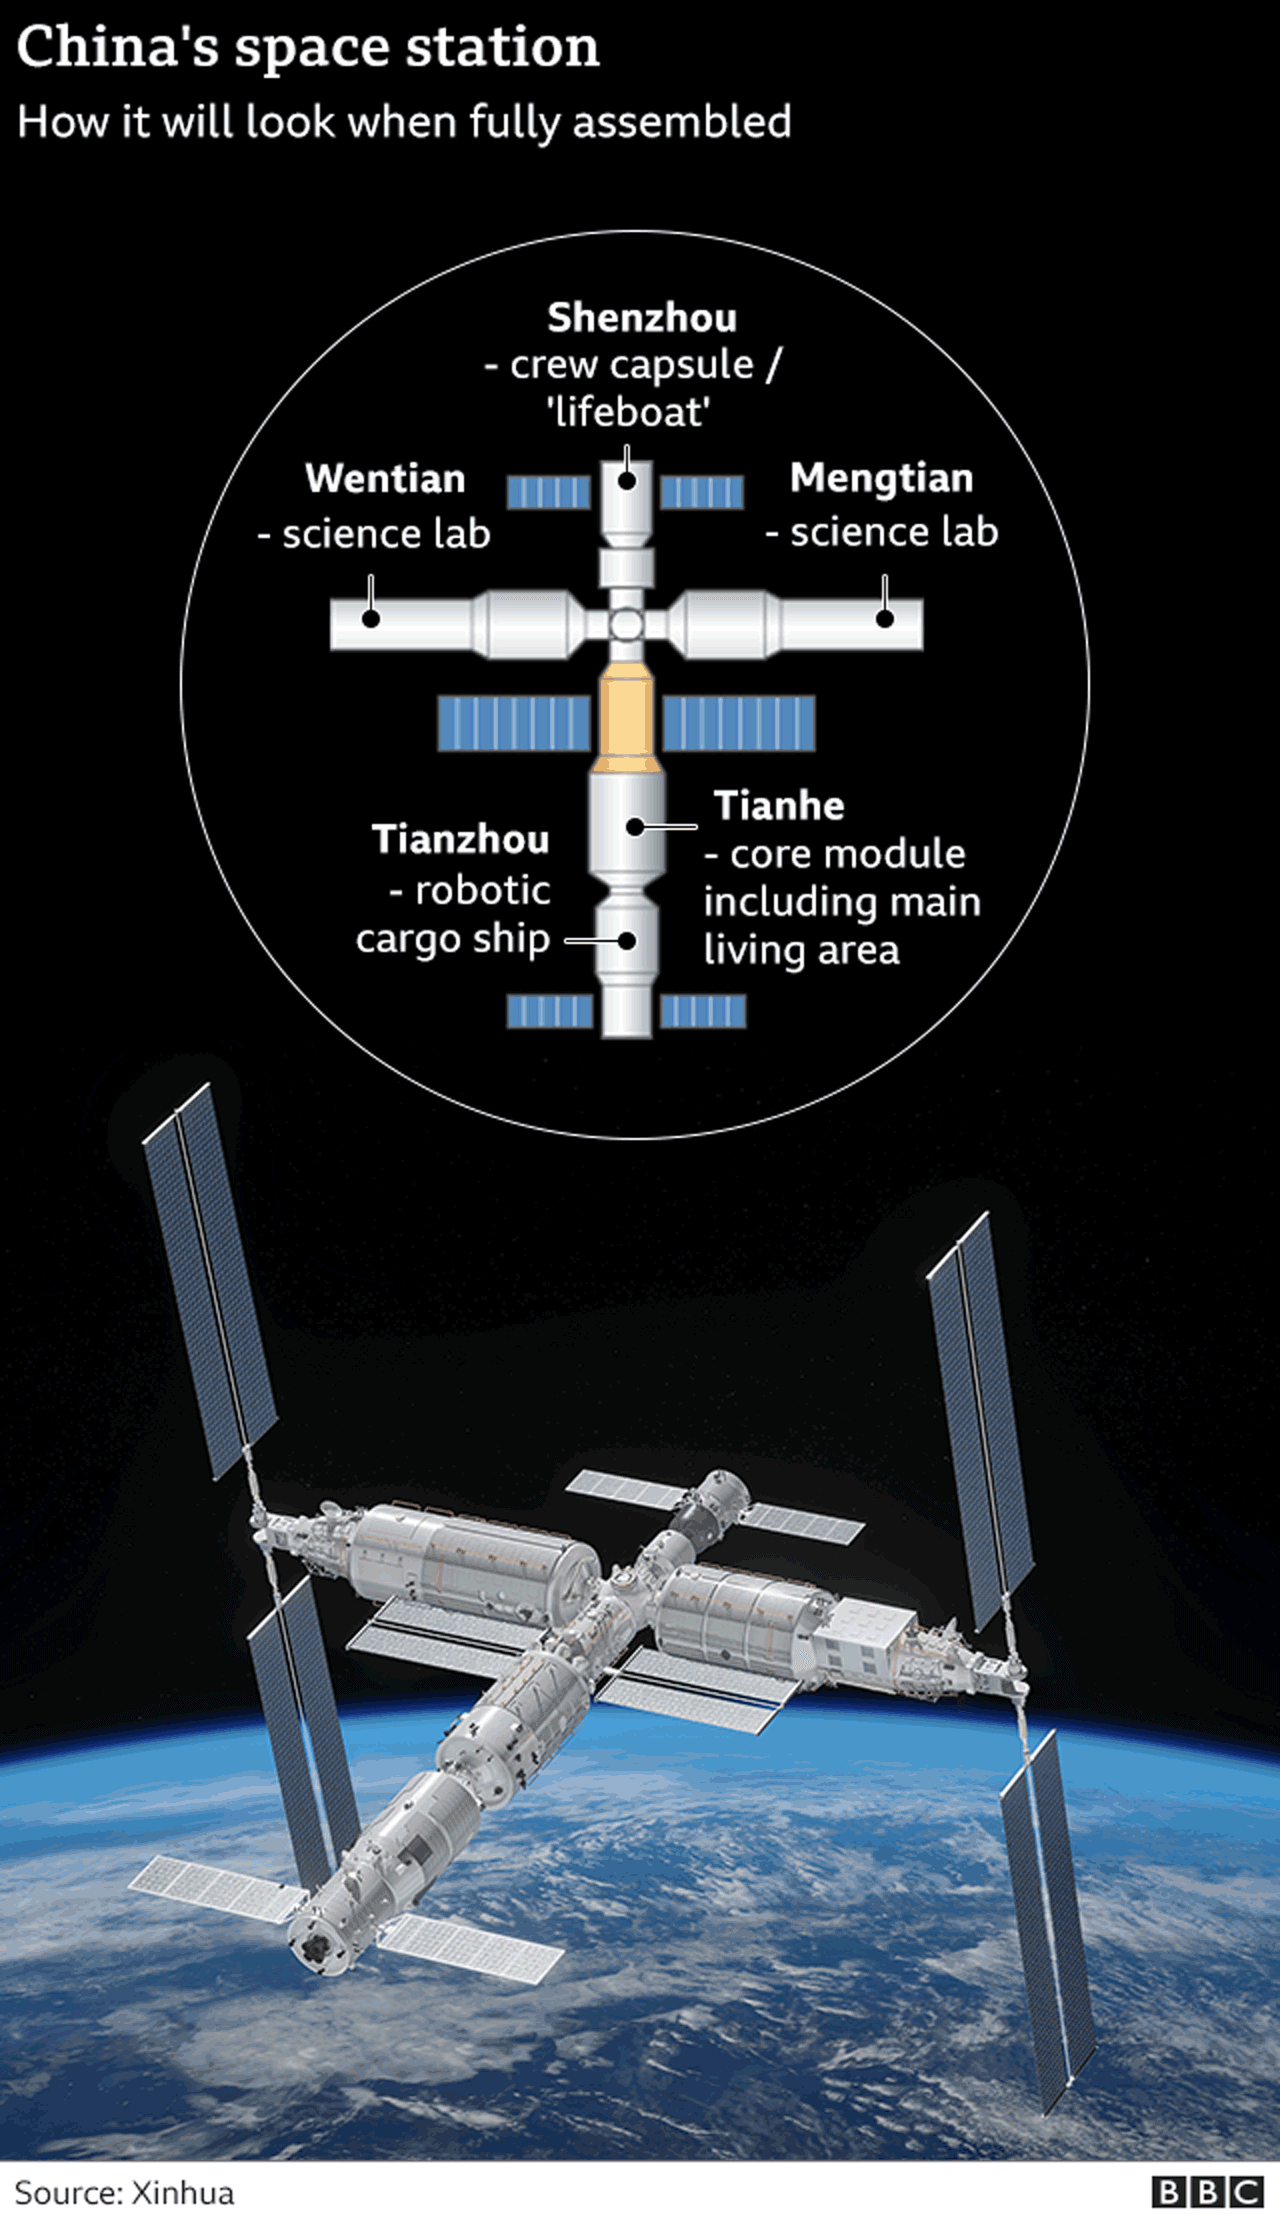 Graphic showing key elements of China's space station